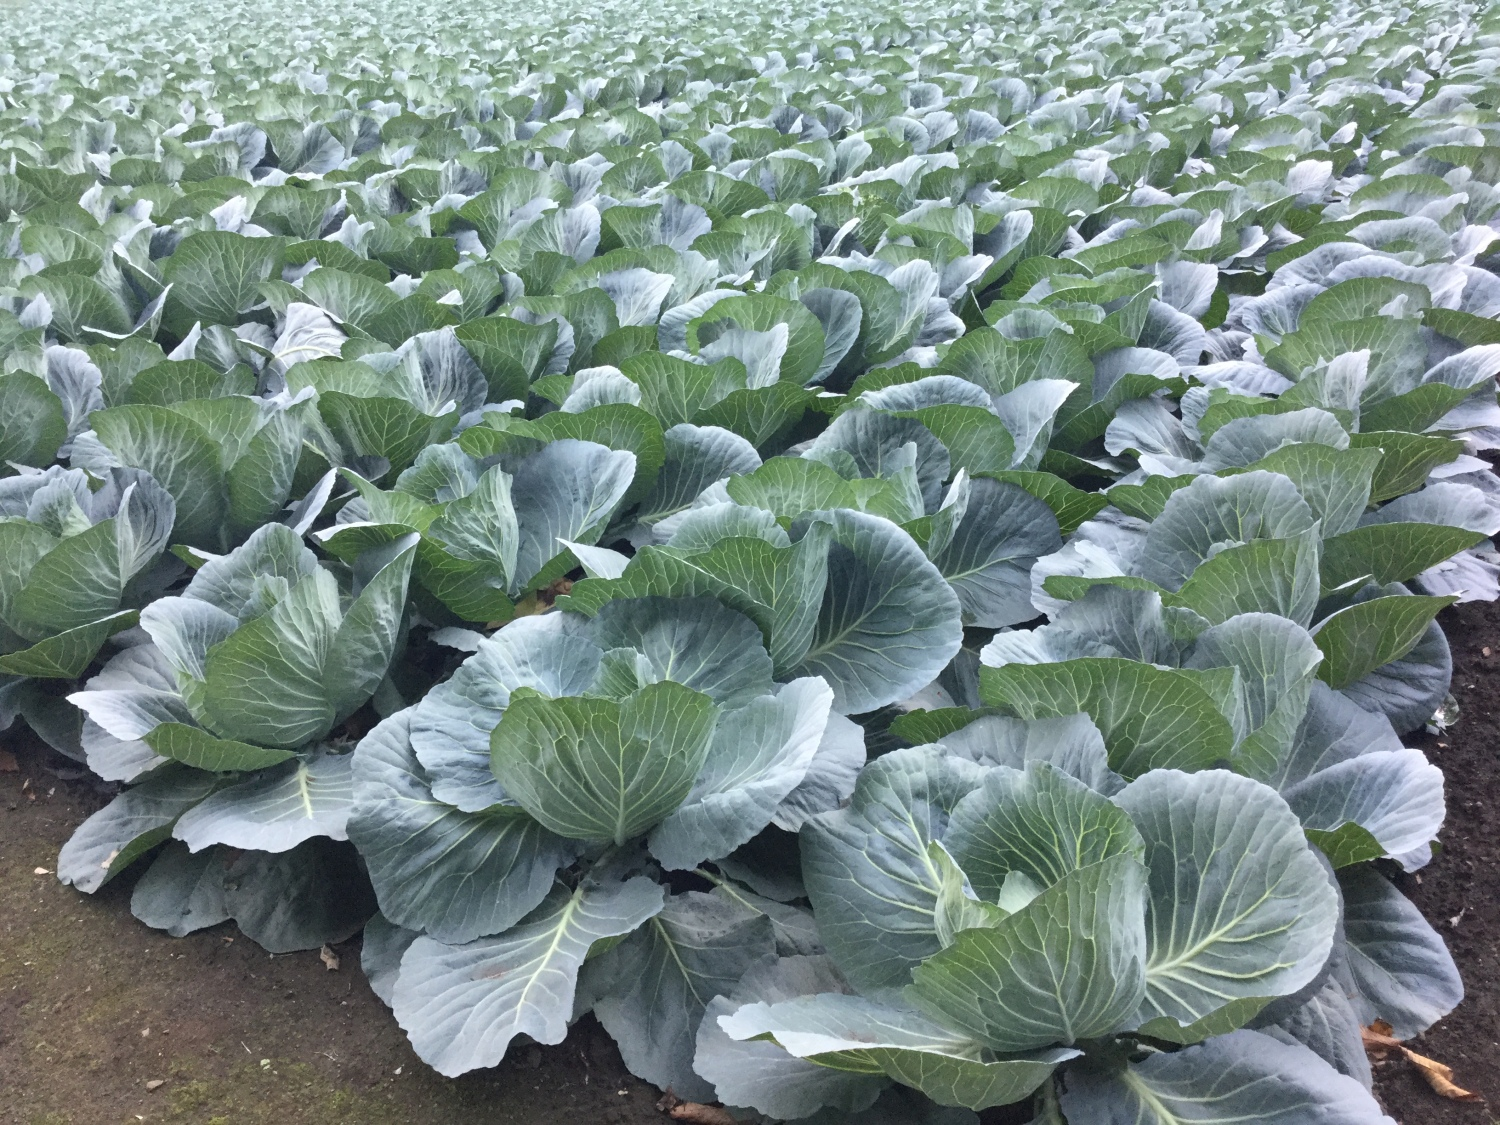 Standing in line of cabbage